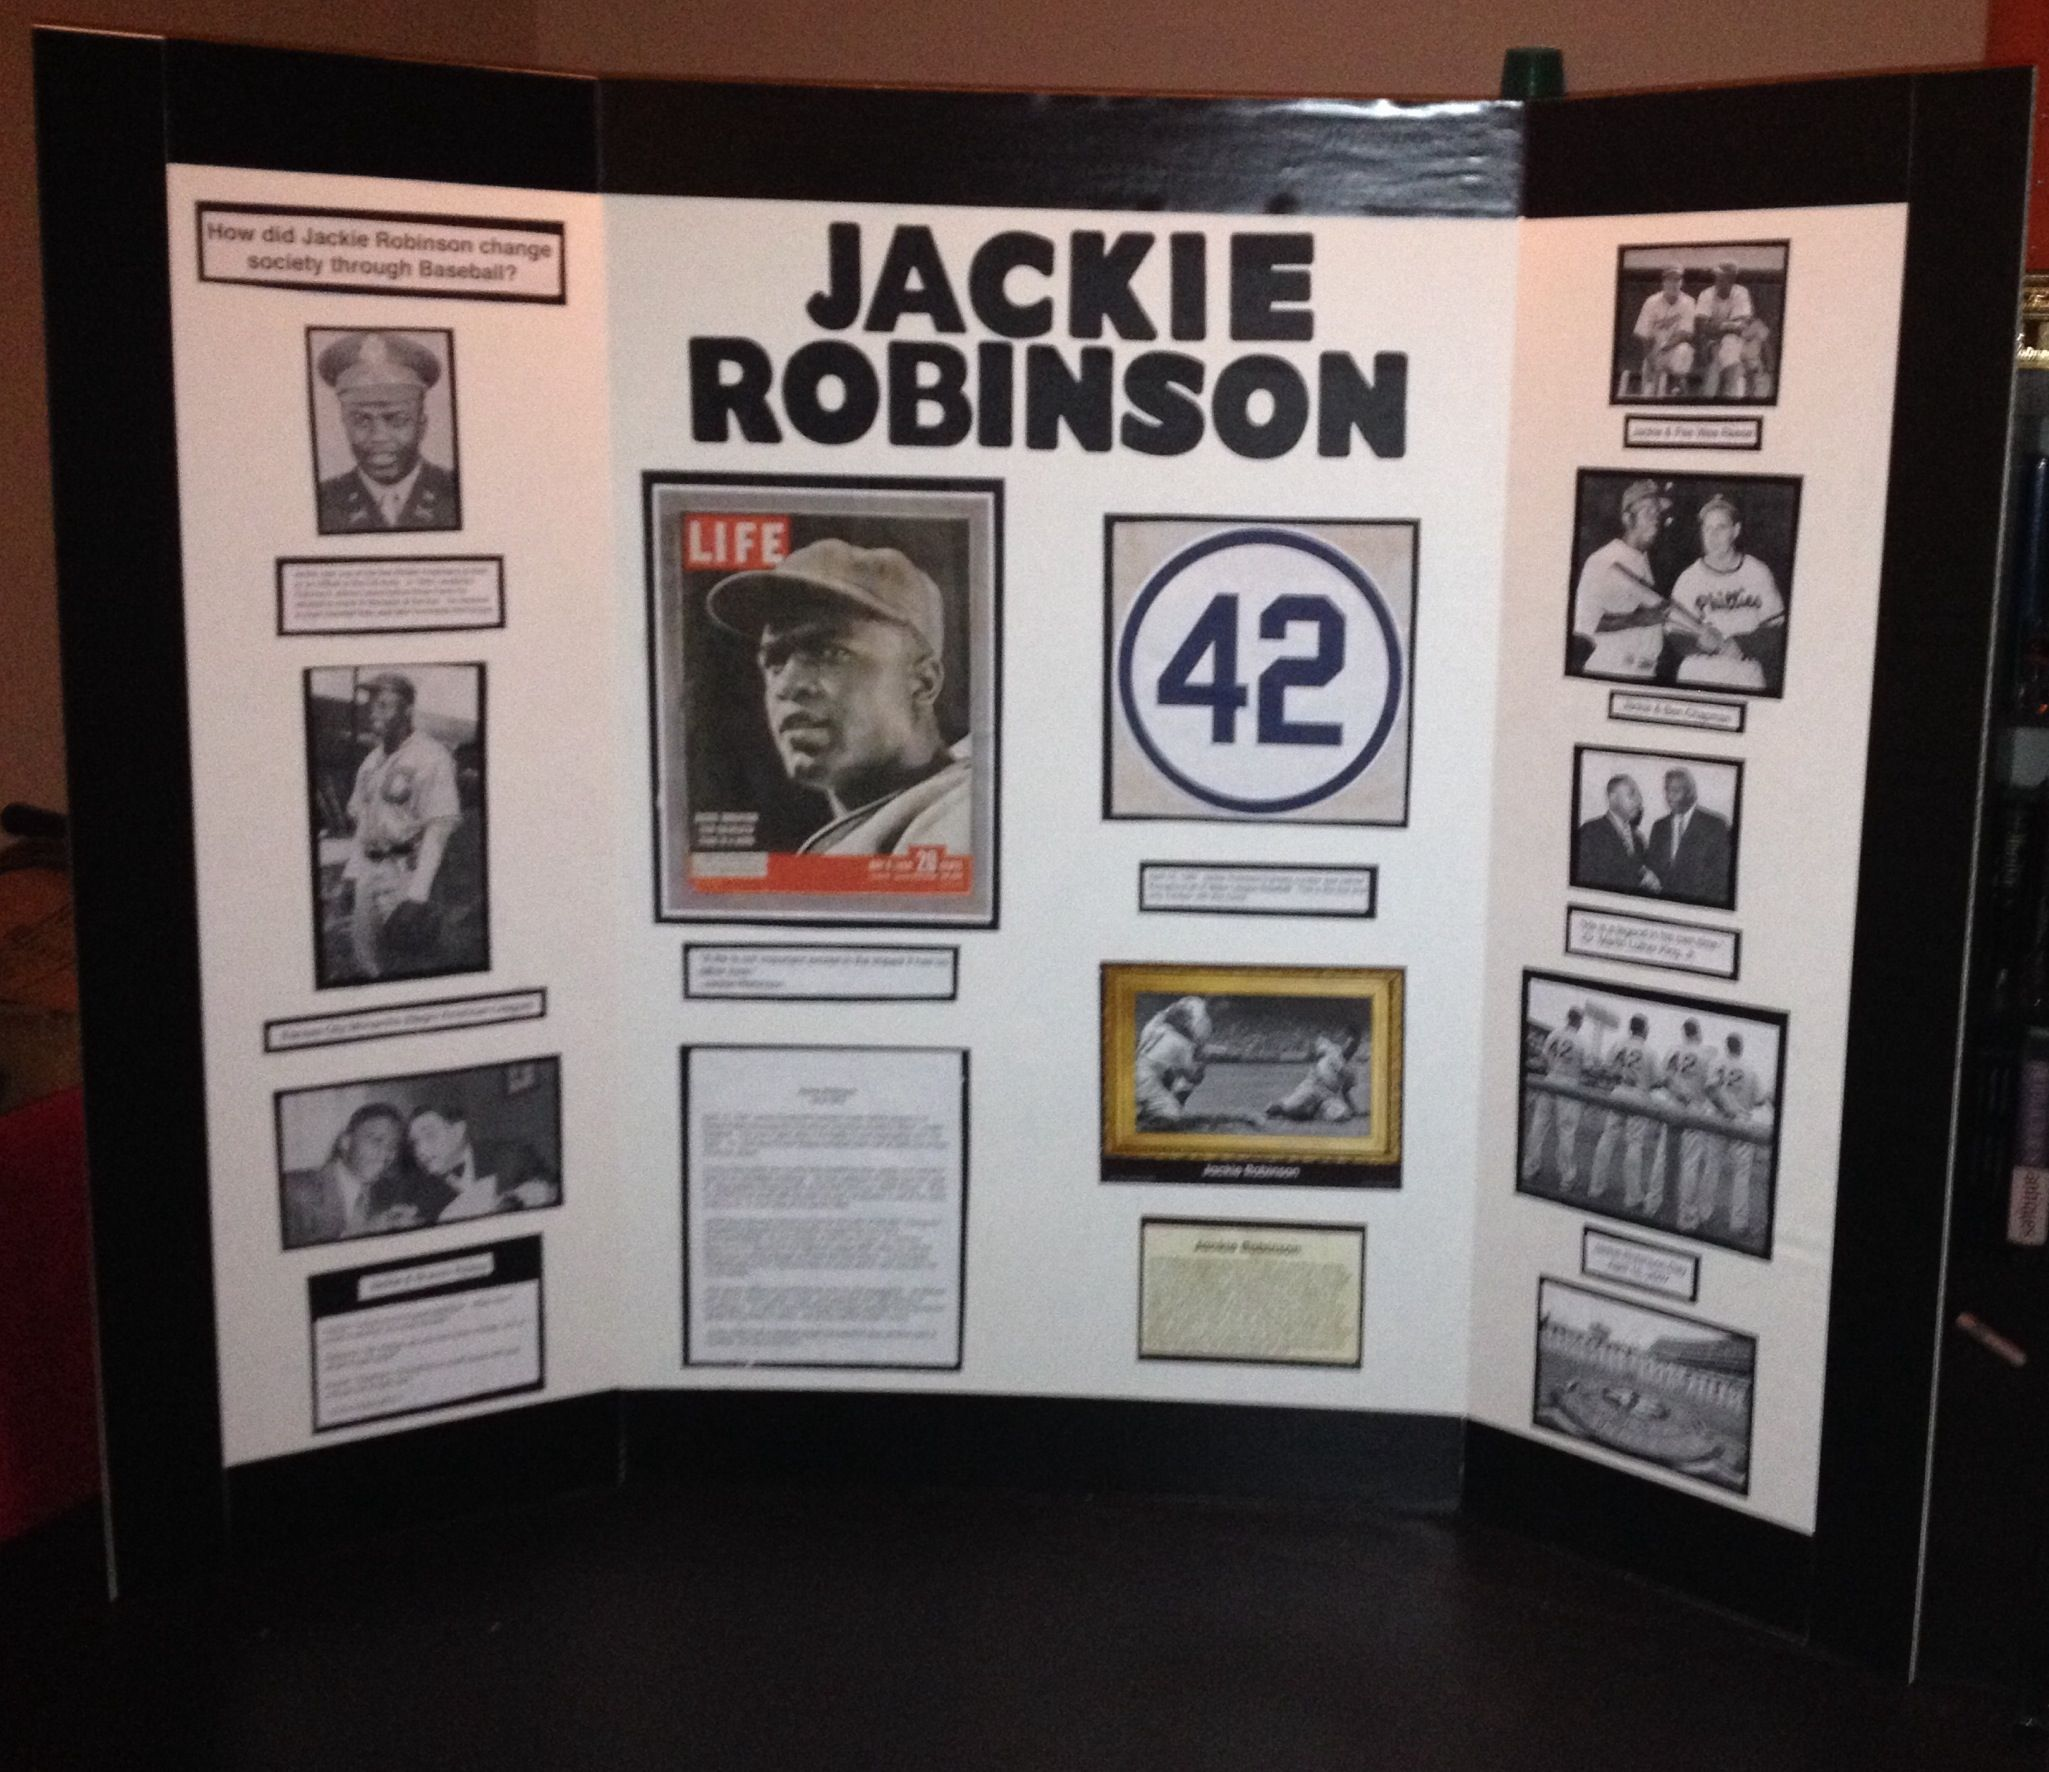 Daughters Social Stu S Board She Chose Jackie Robinson Amp His Social Impact On Baseball Very